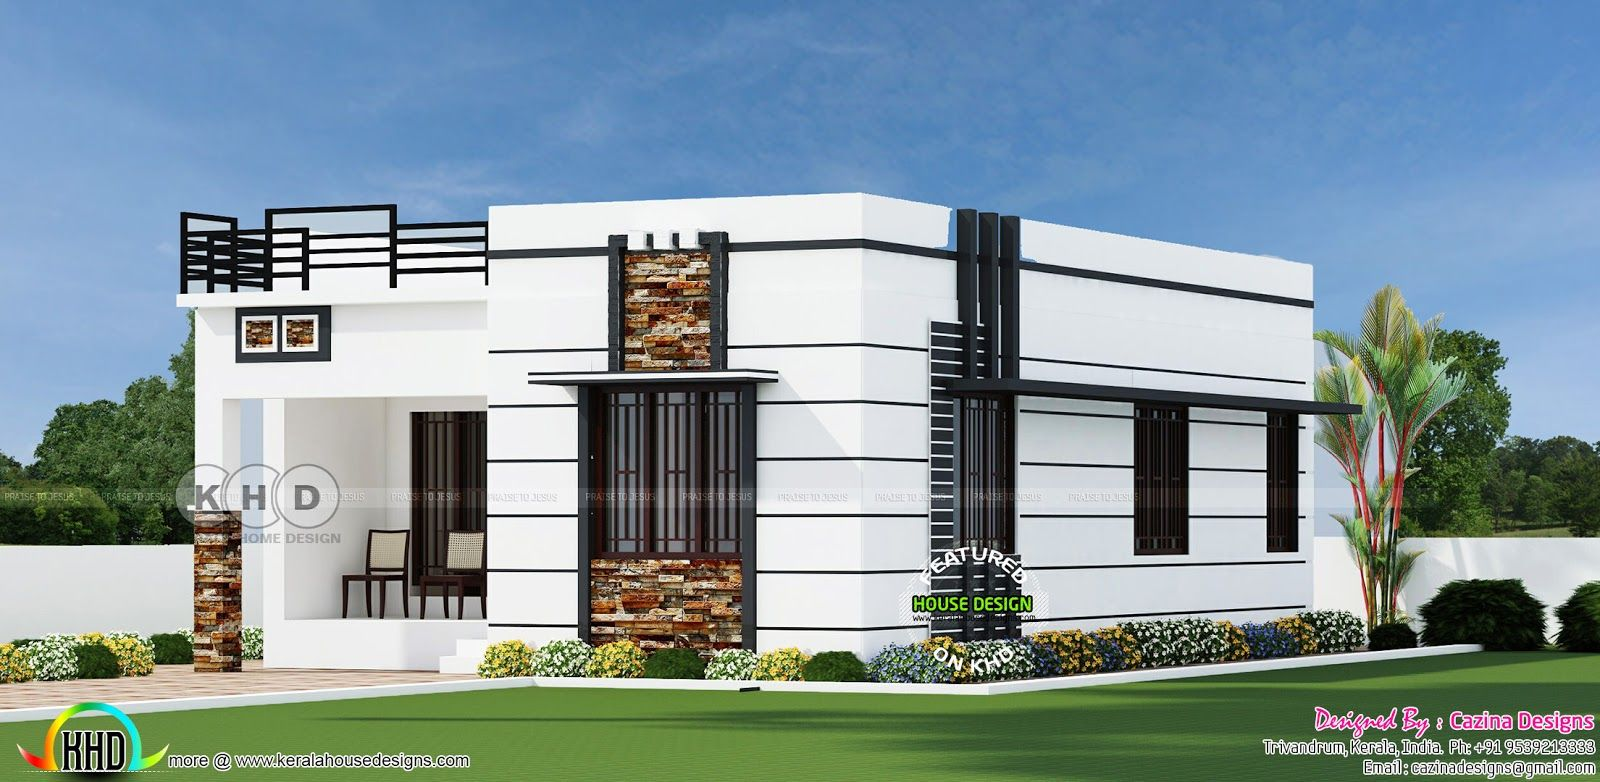 Captivating 2 BHK, 900 Sq Ft Flat Roof Home